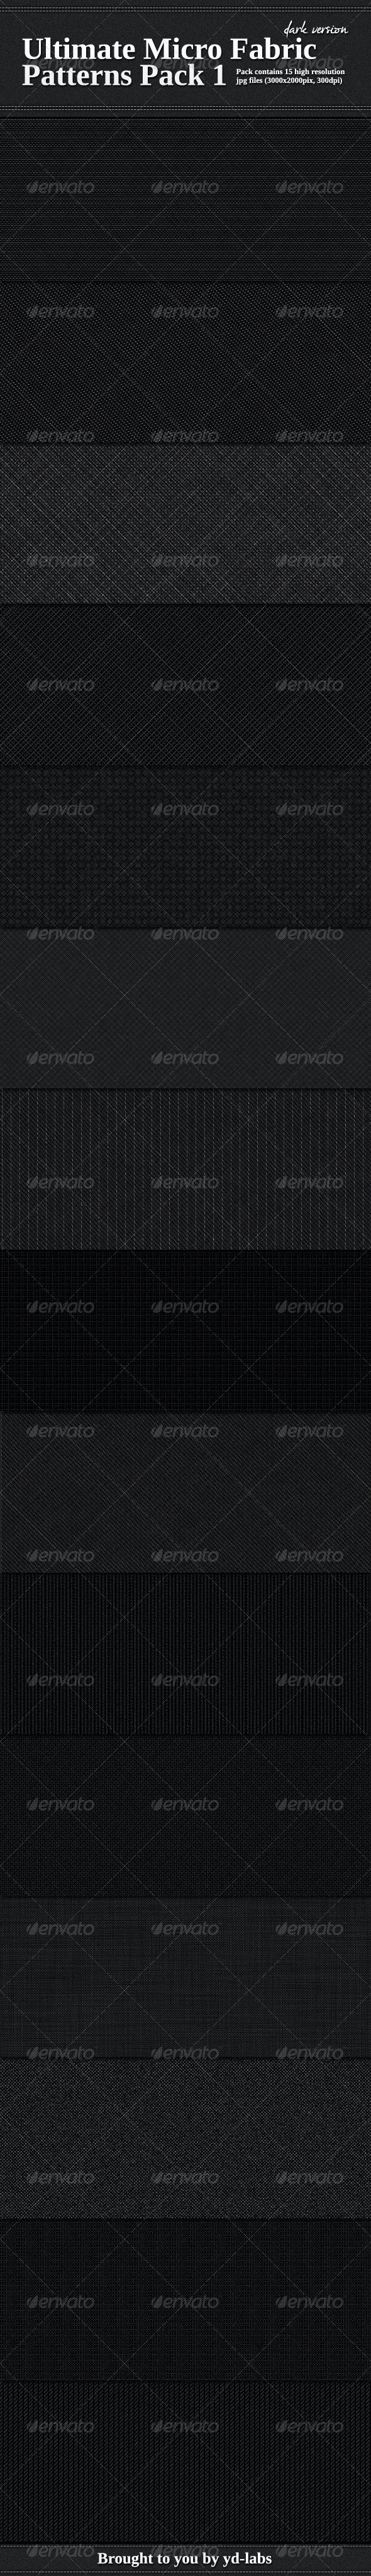 Ultimate Micro Fabric Patterns Pack 1 - Fabric Textures